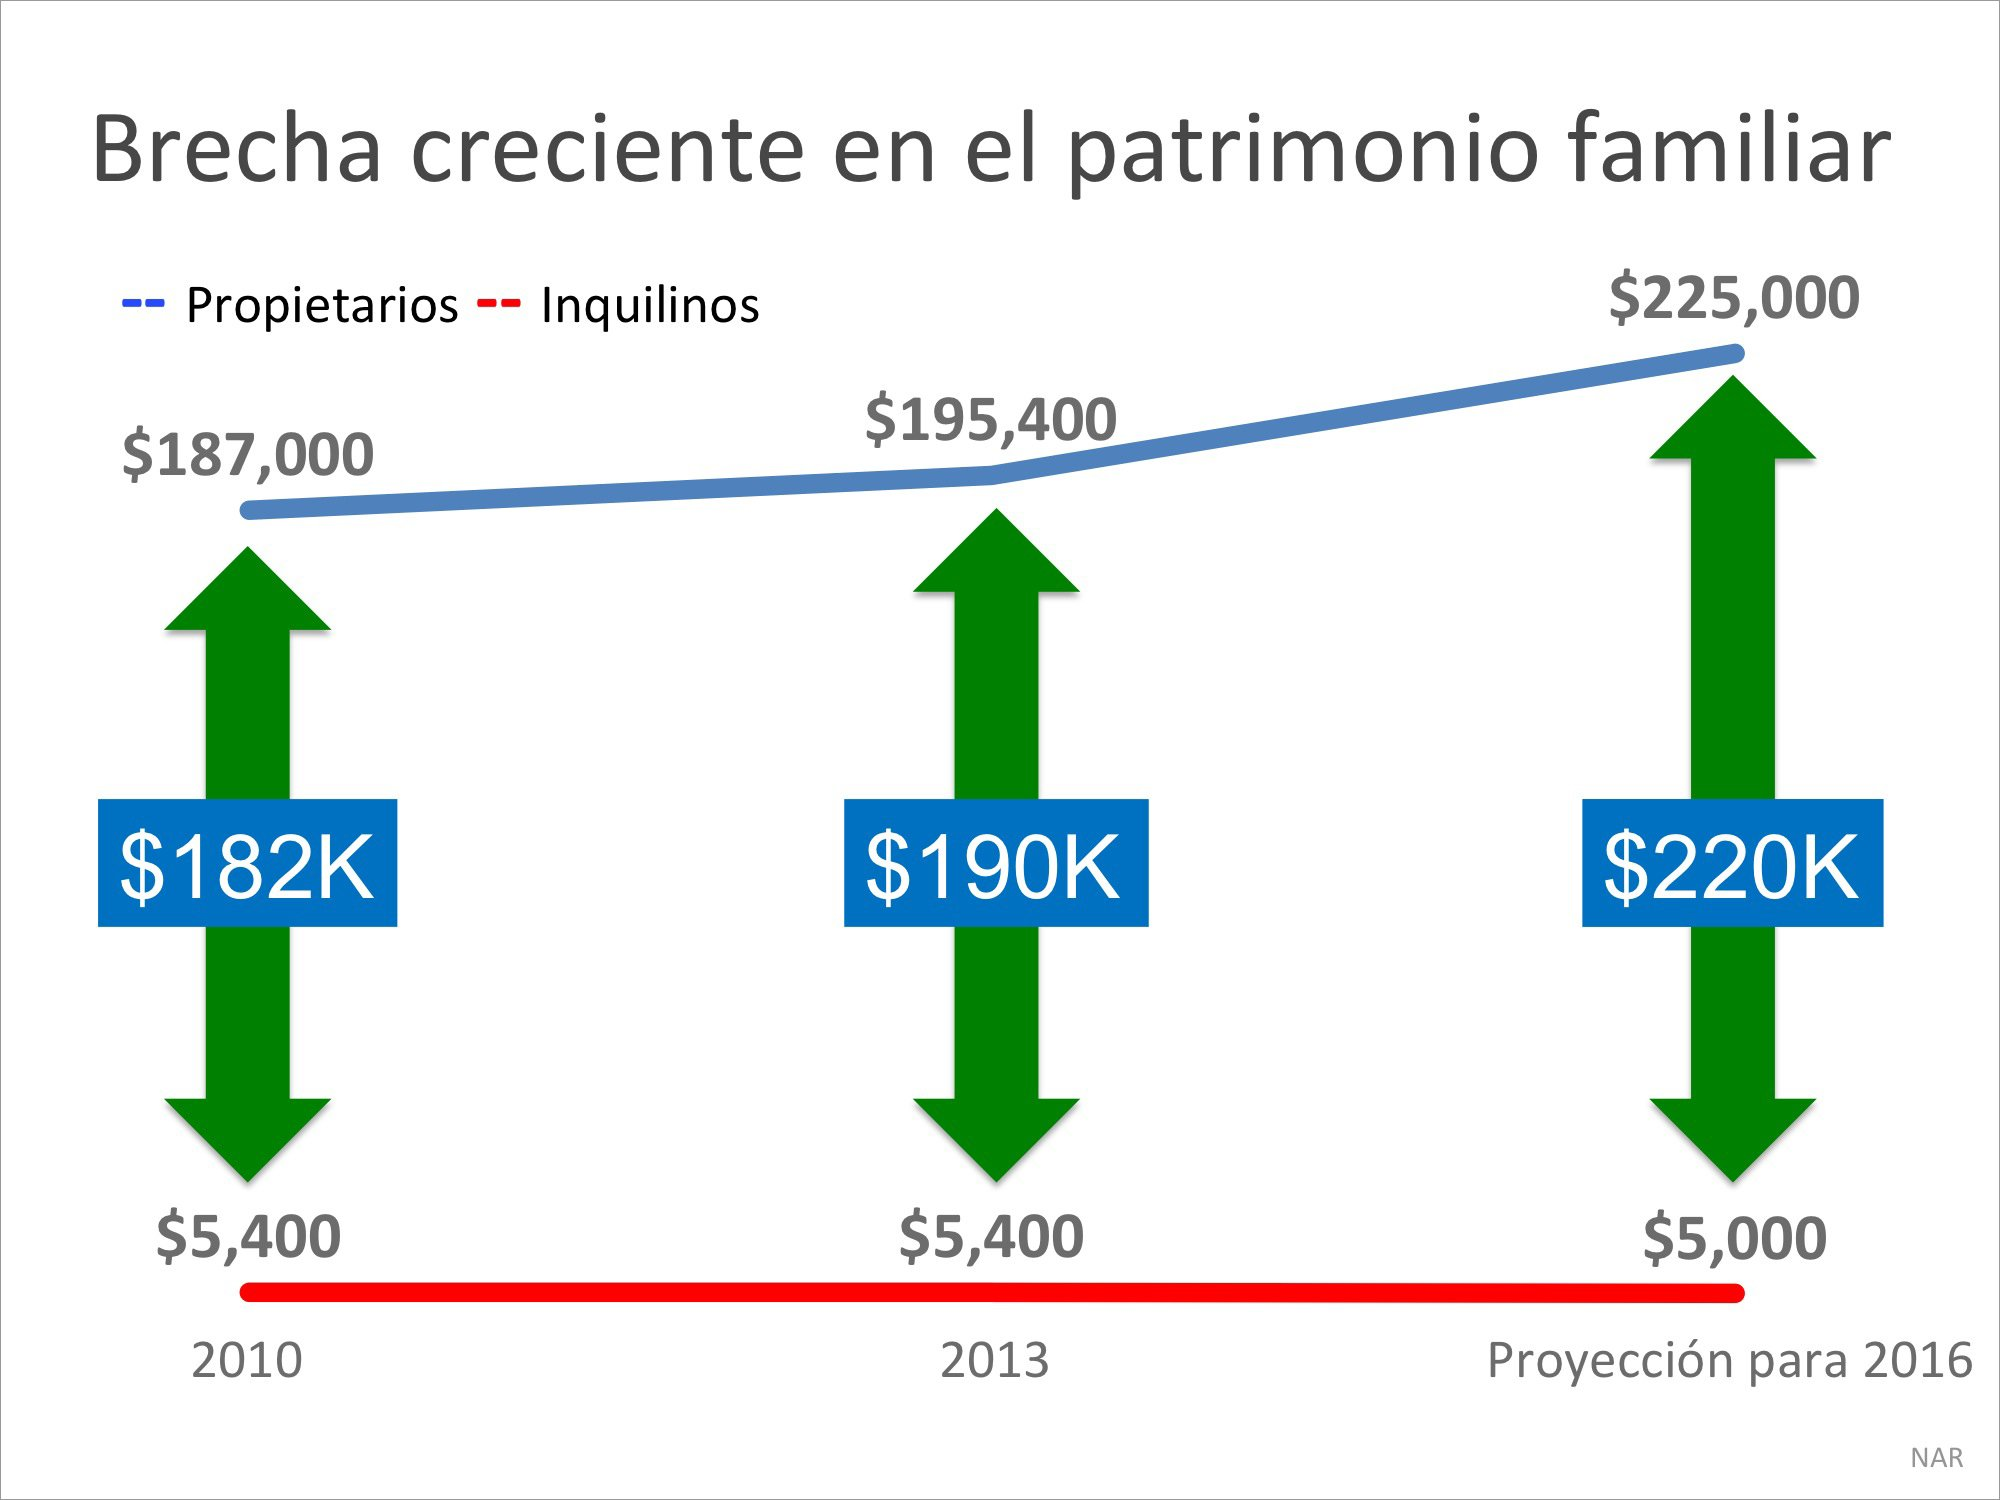 Brecha del patrimonio Familiar| Simplifying The Market